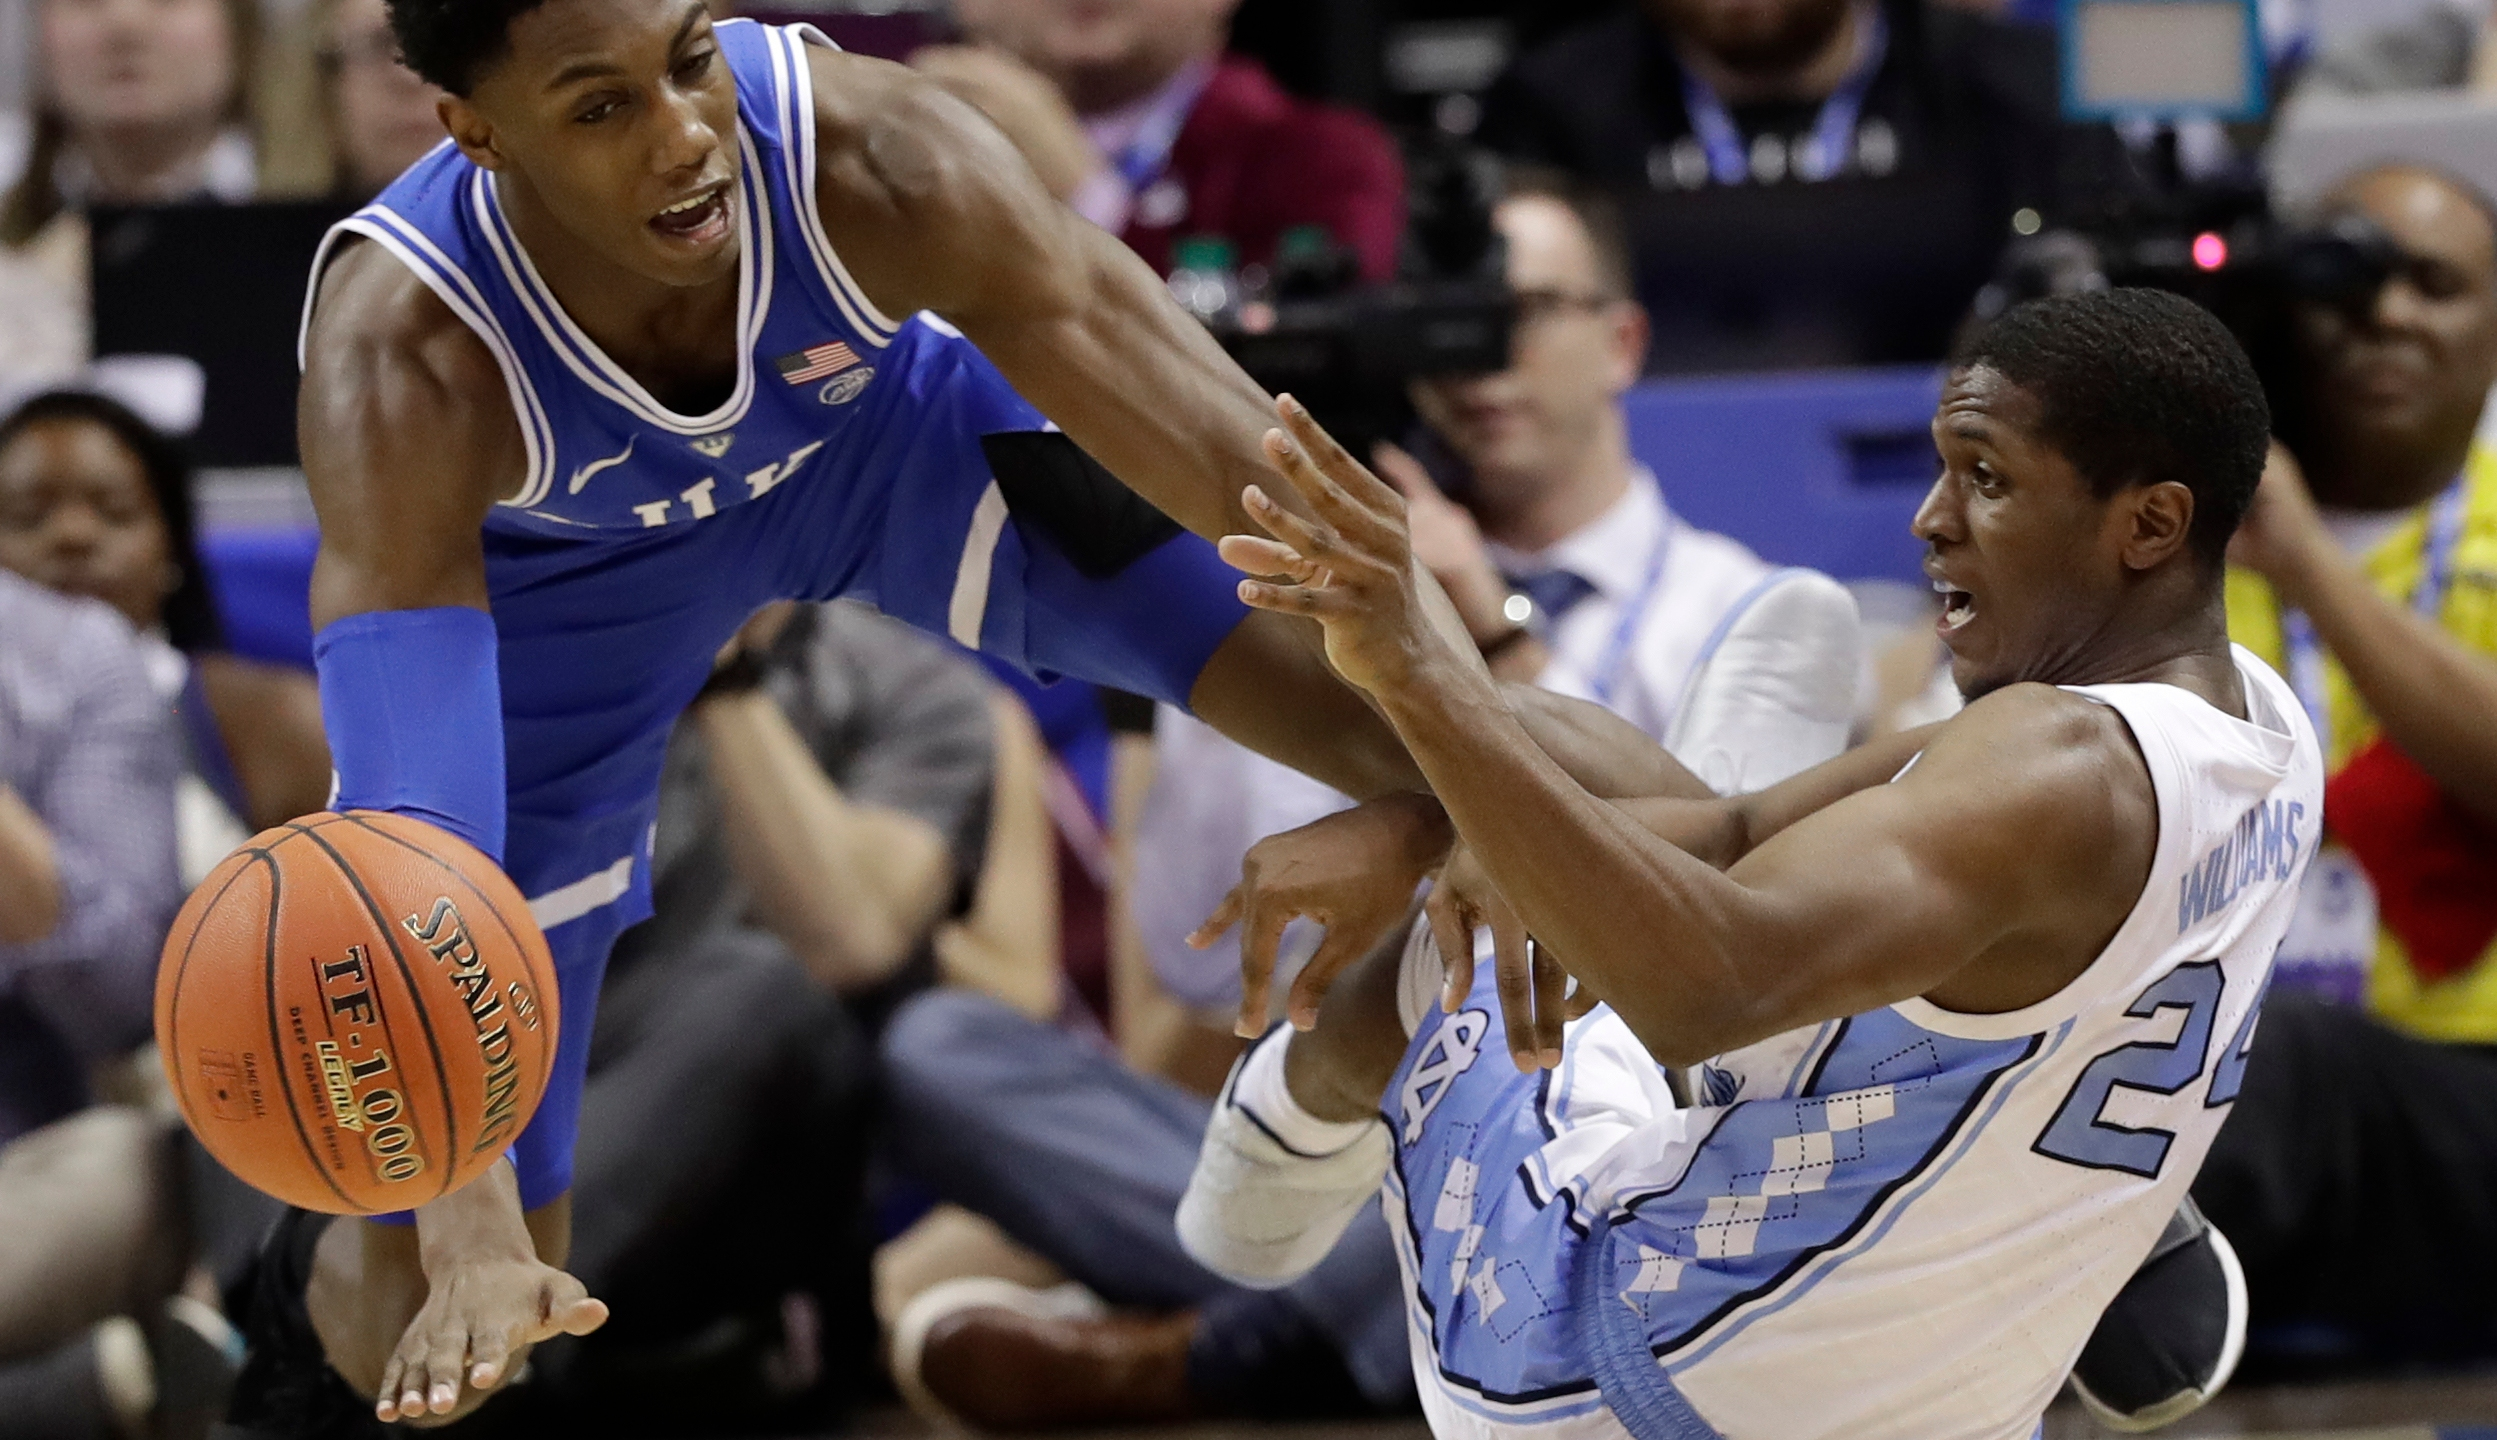 ACC_Duke_North_Carolina_Basketball_08755-159532.jpg02065307